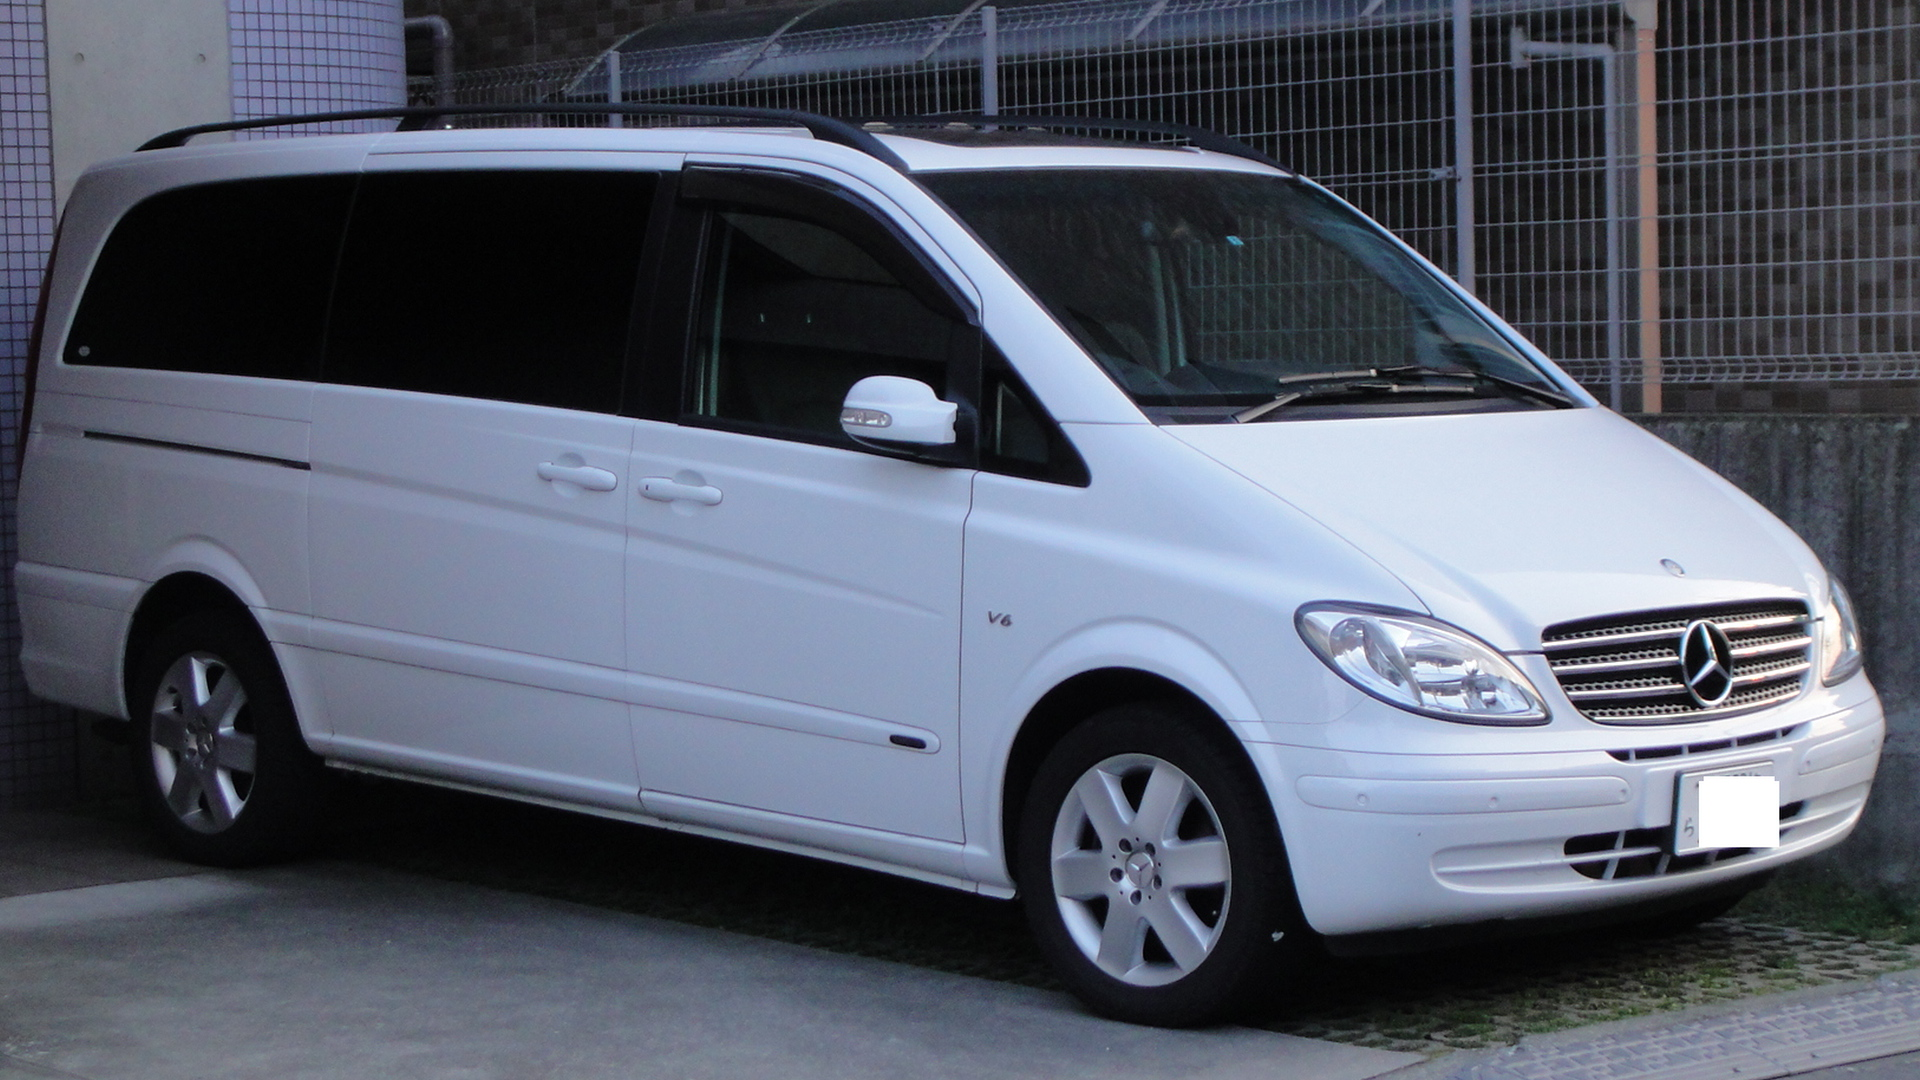 Mercedes Benz V350 Tx Wikipedia